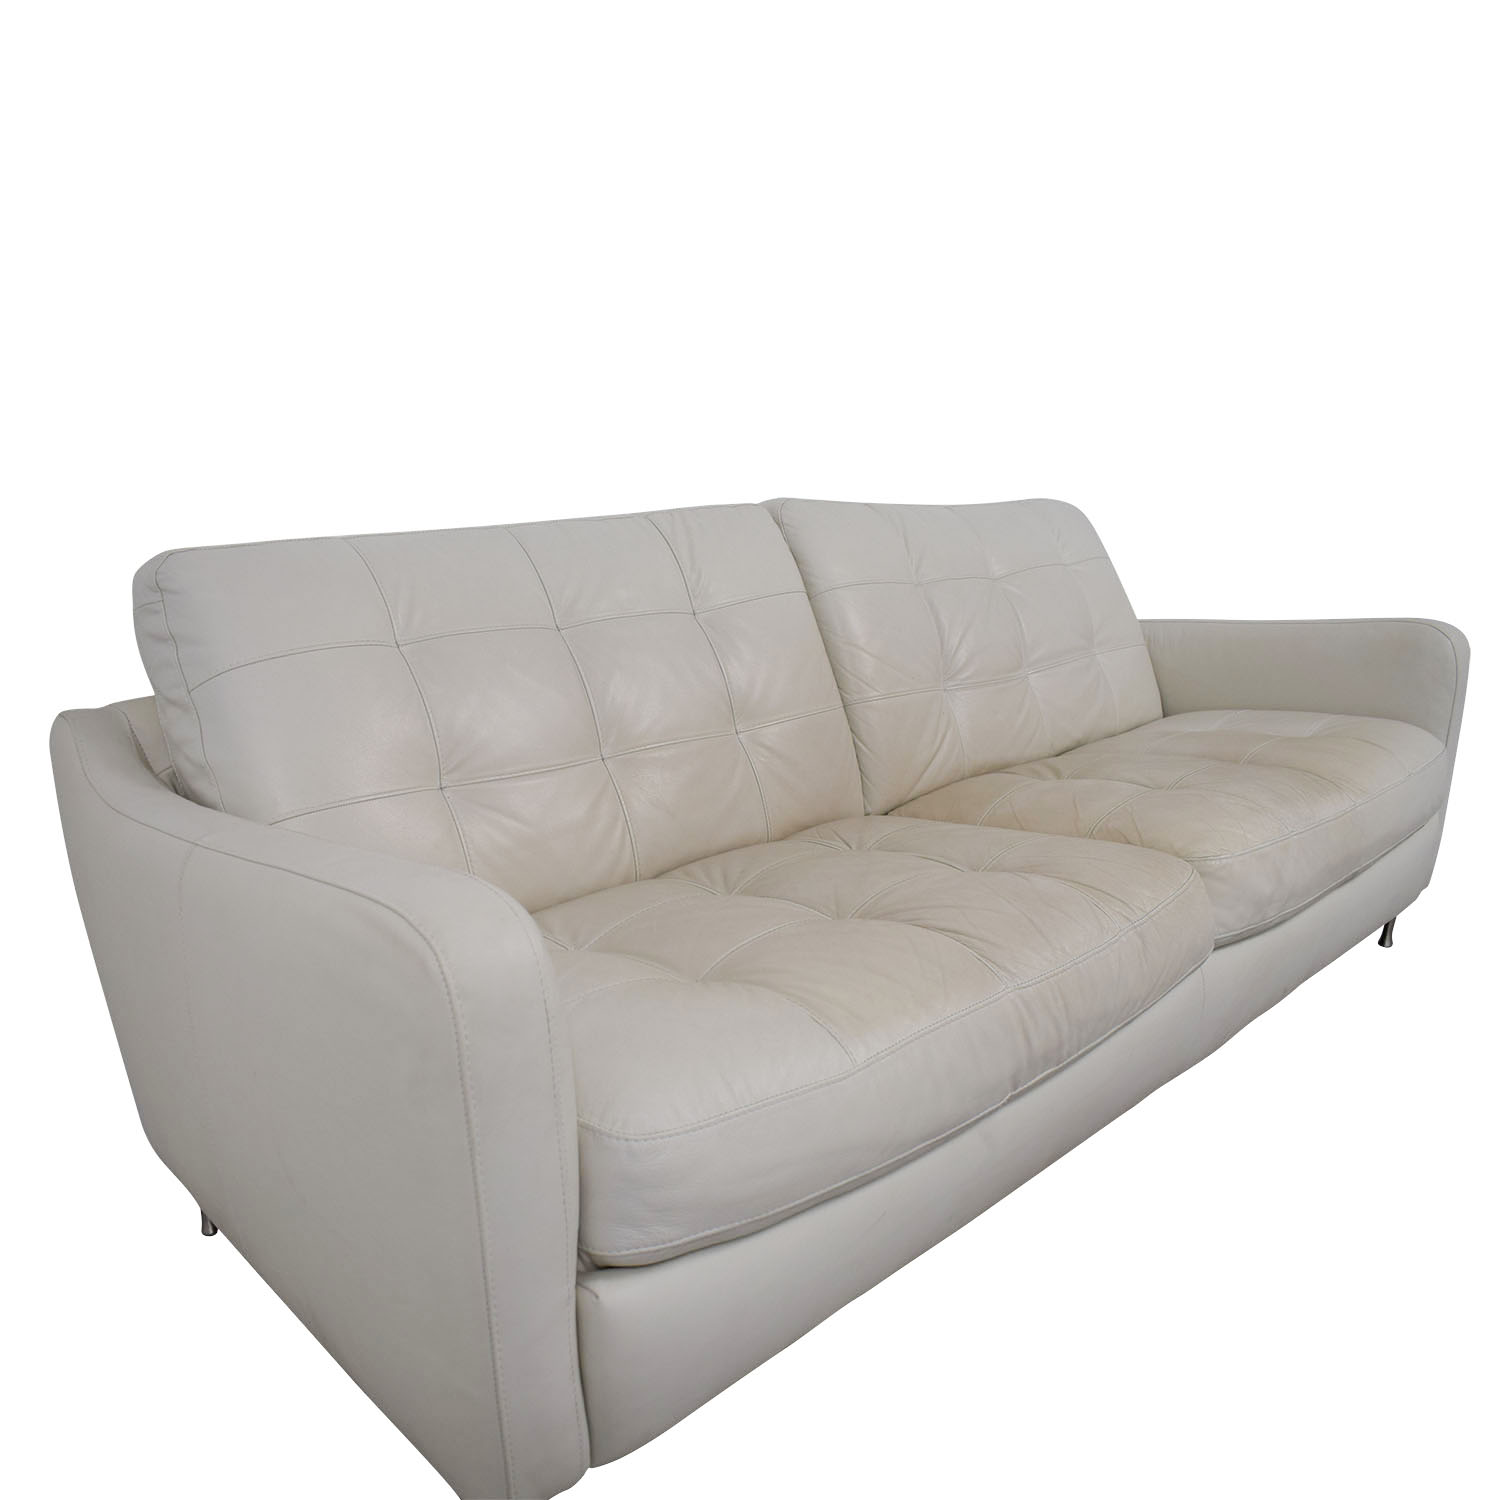 Our editors independently research, test, and recommend the best products; 90% OFF - Natuzzi Natuzzi White Tufted Leather Sofa / Sofas